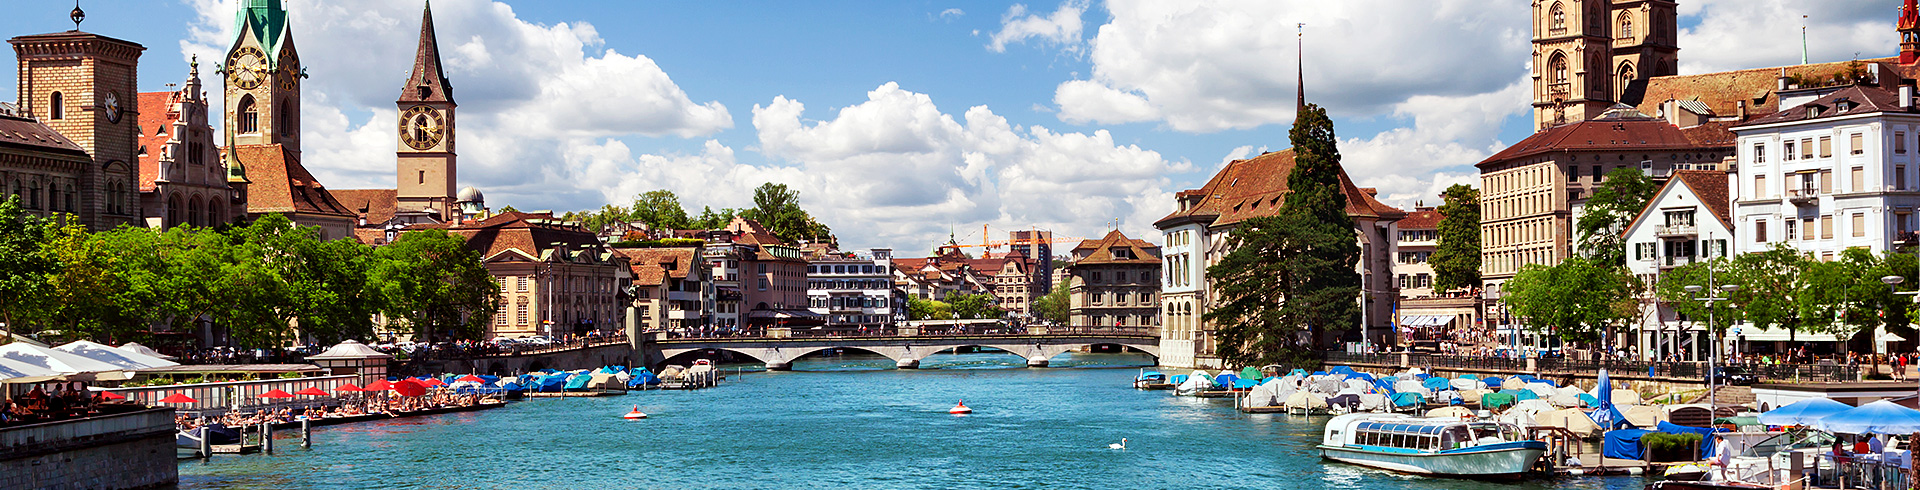 Discounted flight tickets to Zurich - IFlyFirstClass